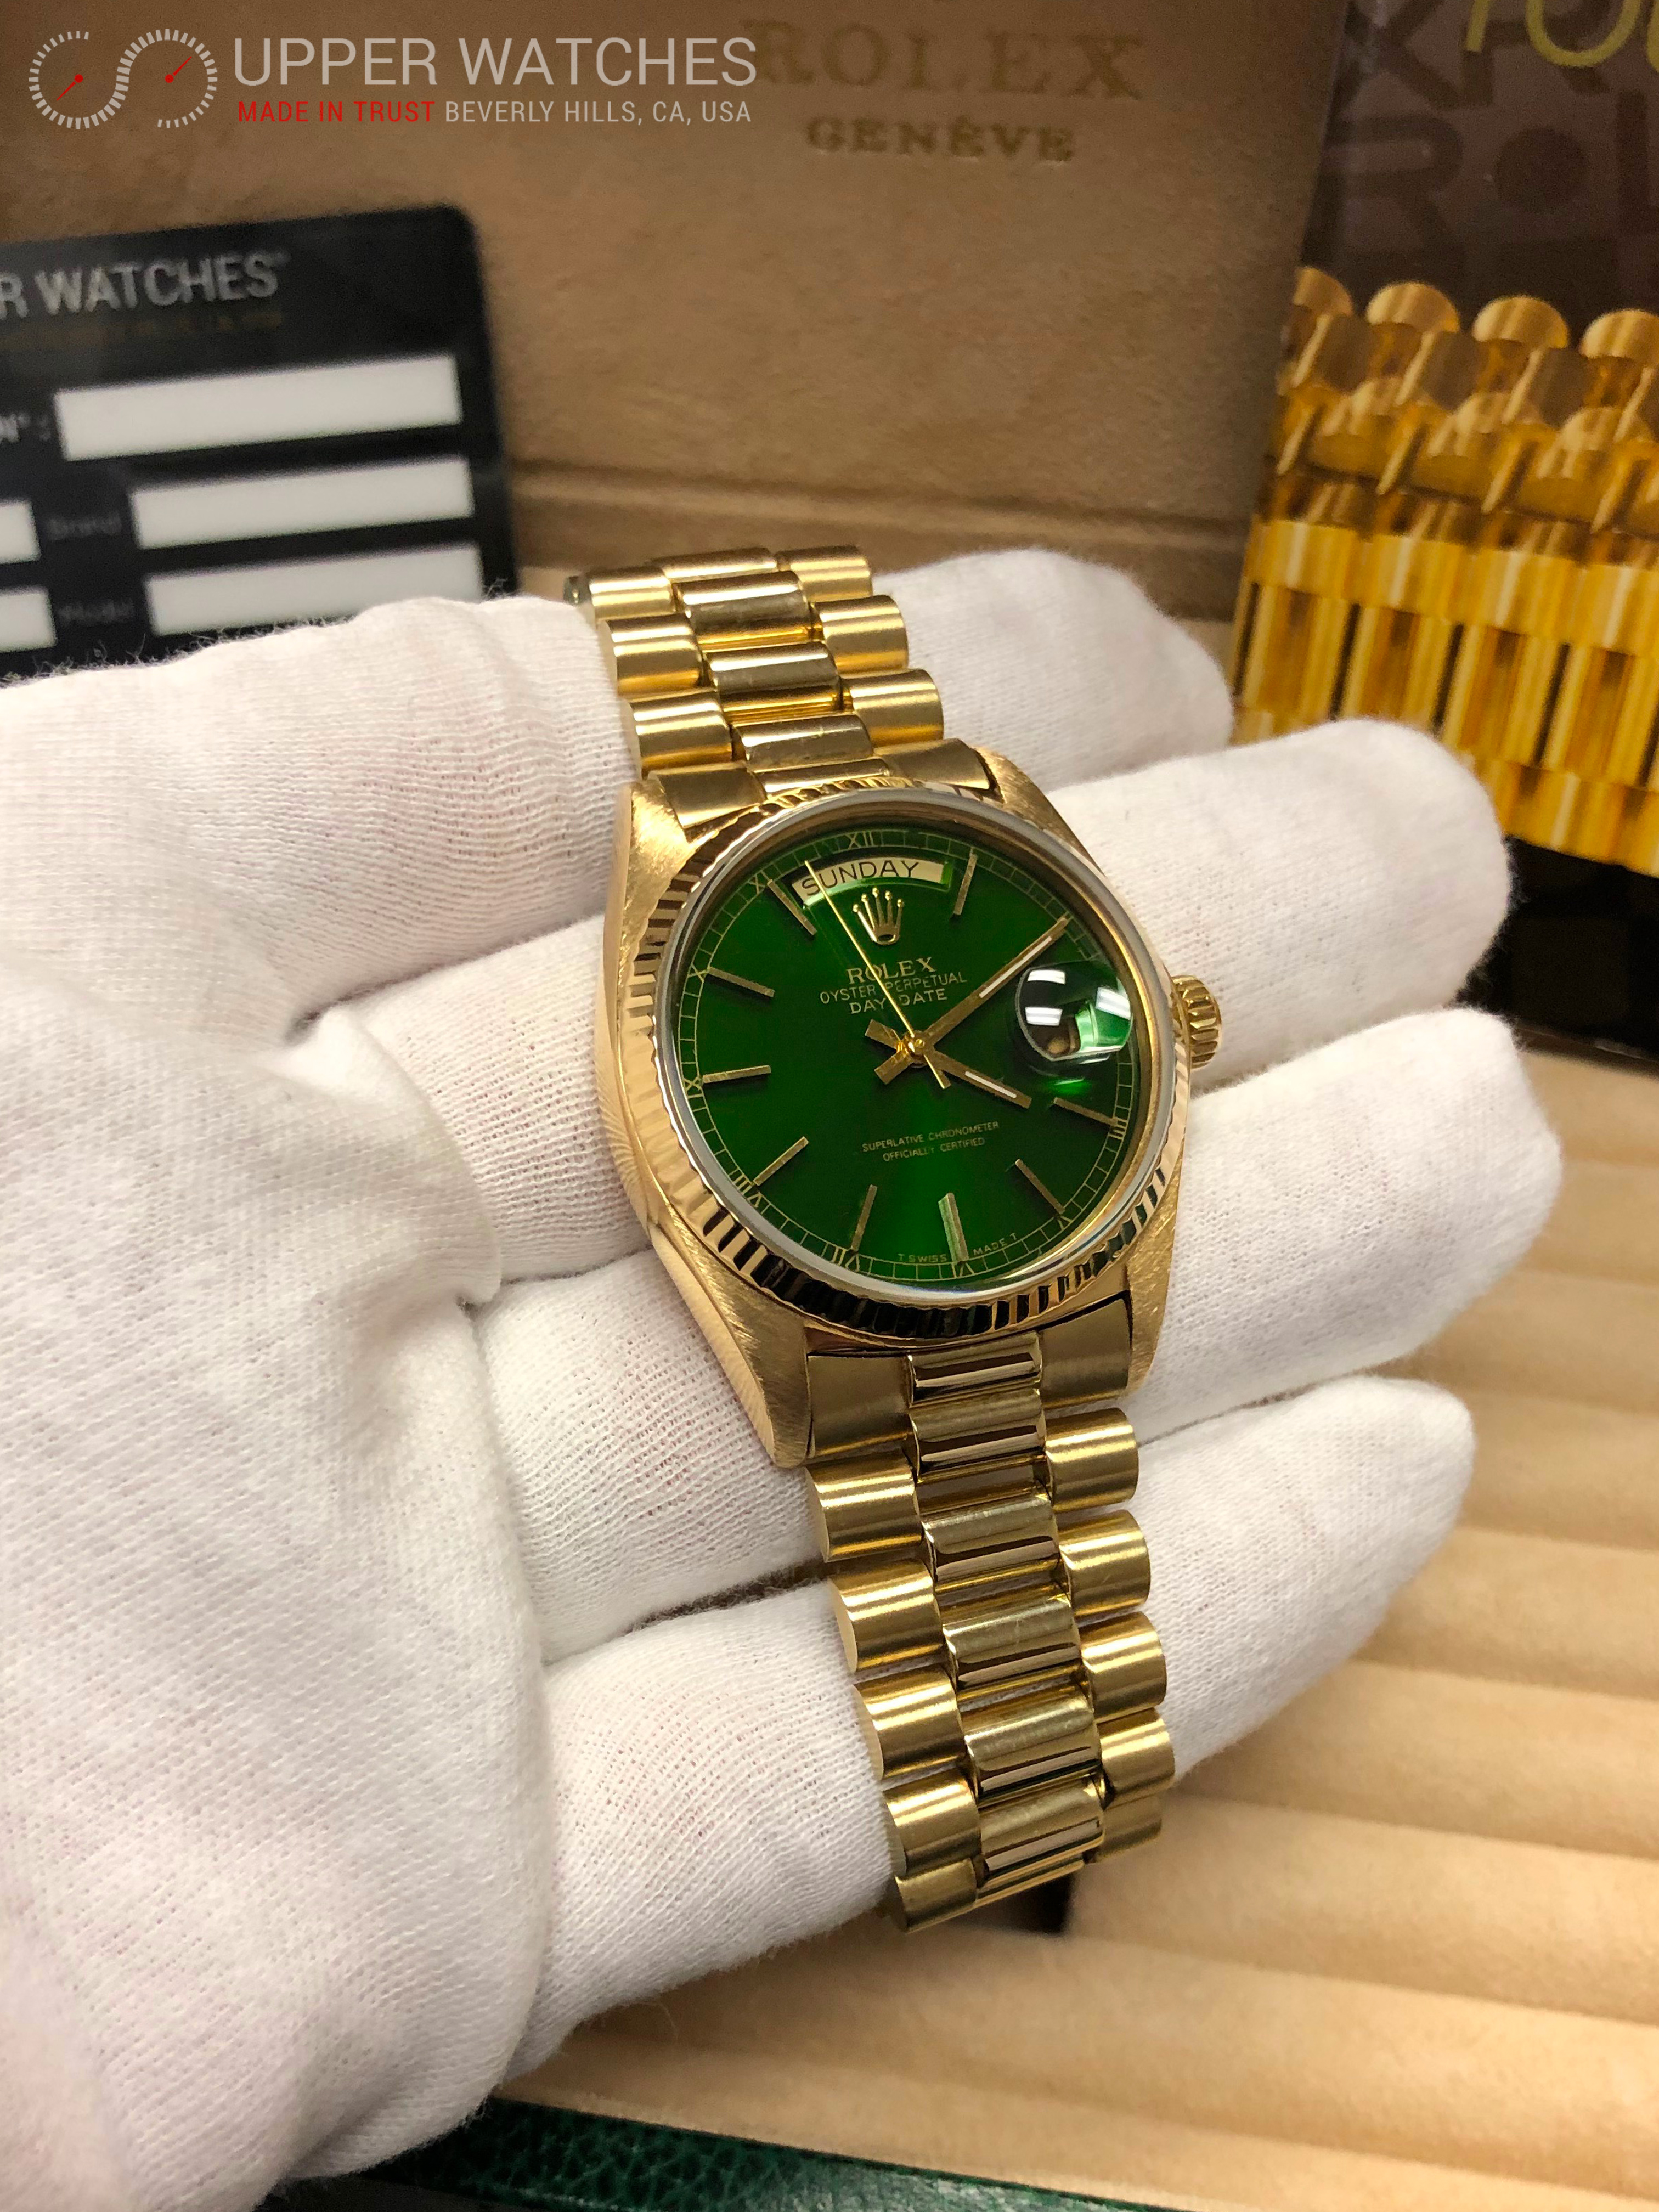 Rolex 18038 Oyster Perpetual Day Date 18k Yellow Gold Automatic Green Dial